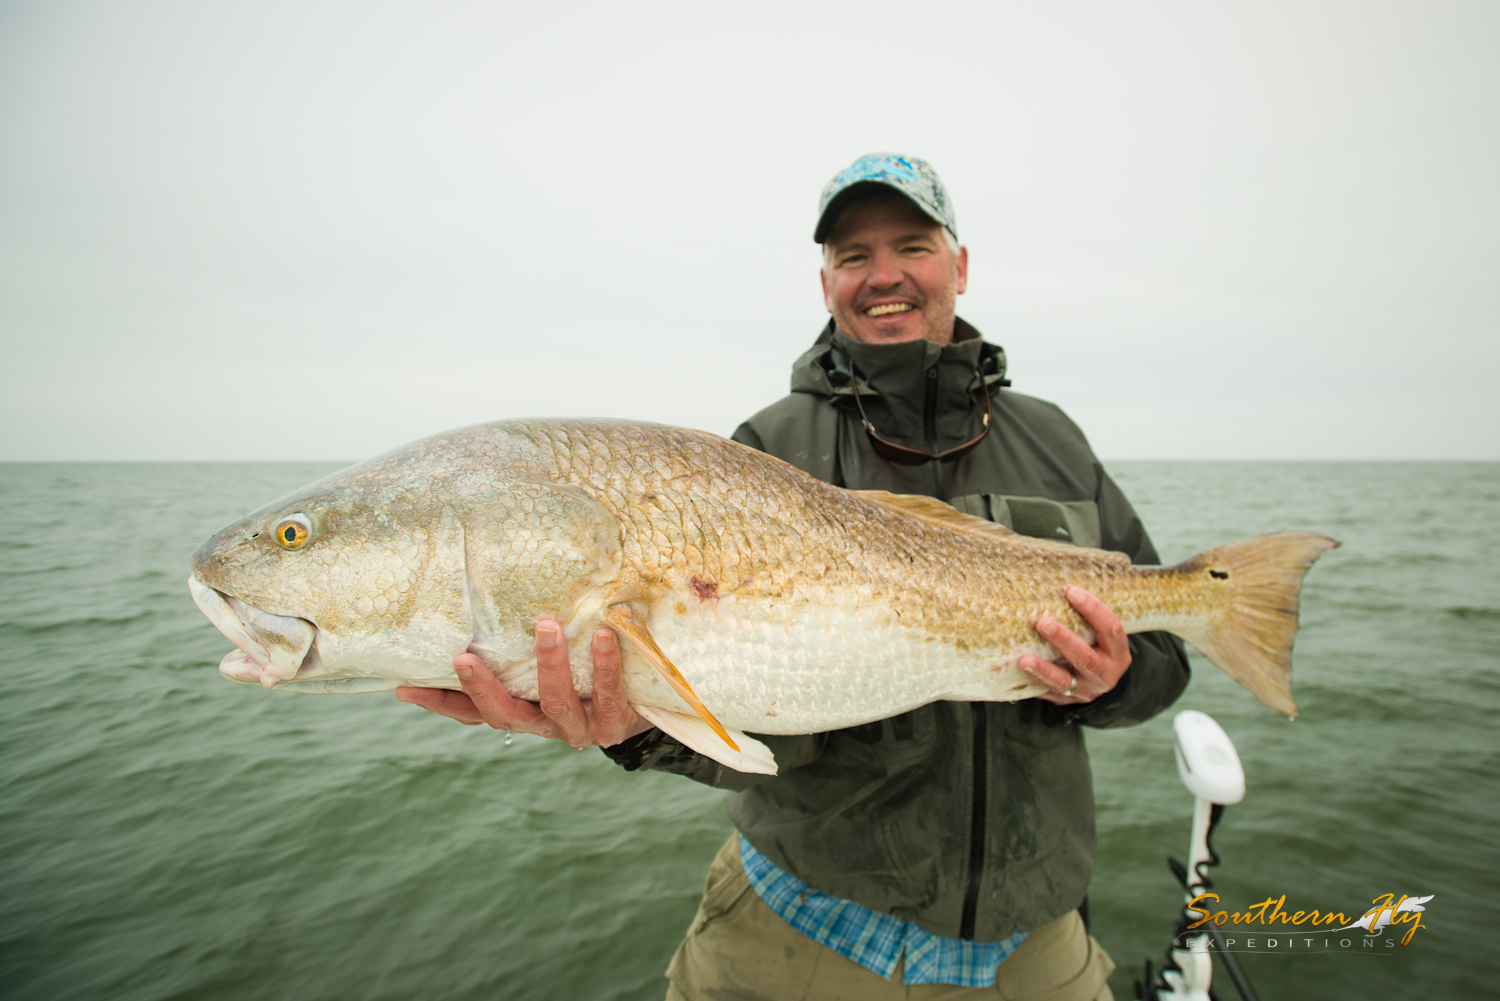 Best Weekend Red Fish Guide Hopedale La Southern Fly Expeditions